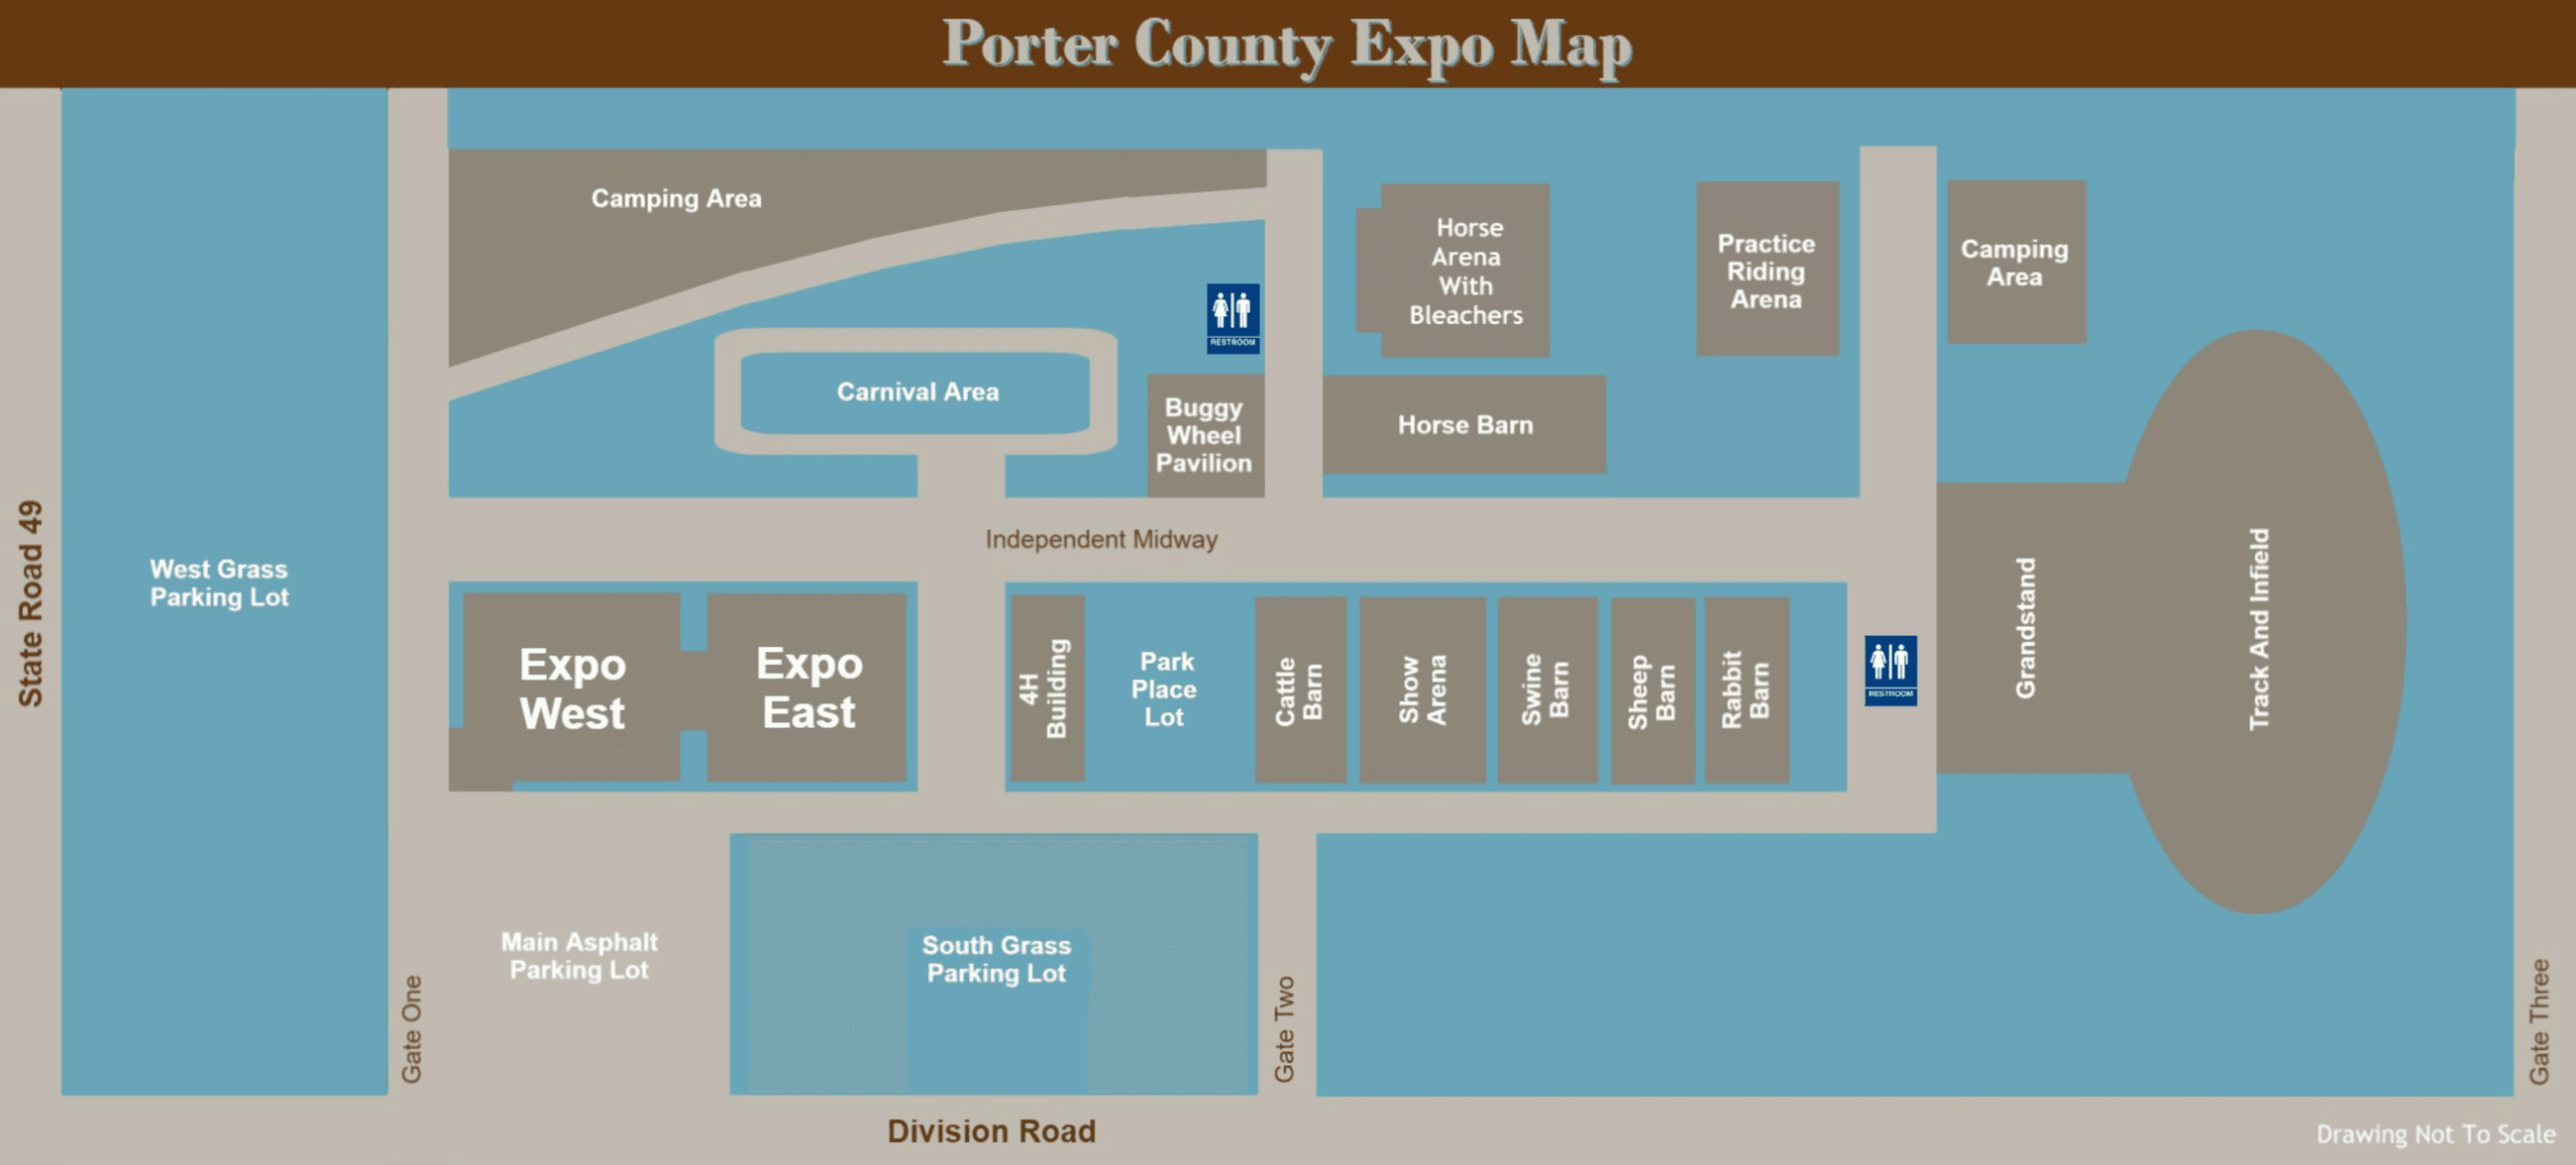 Map Of Porter County Expo Grounds